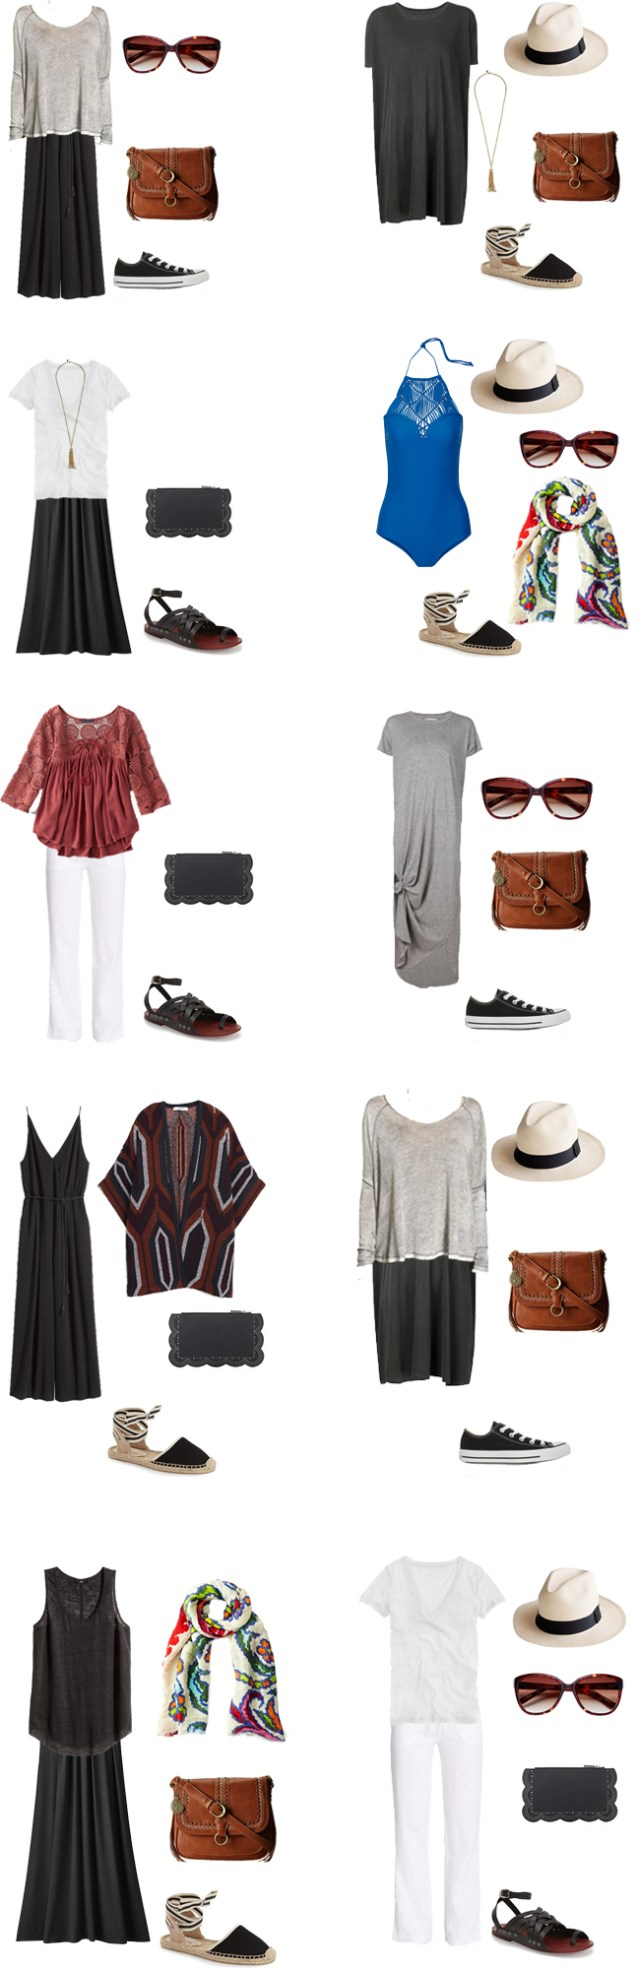 What to Wear in Panama Outfits 1-10 #travellight #packinglight #travel #traveltips